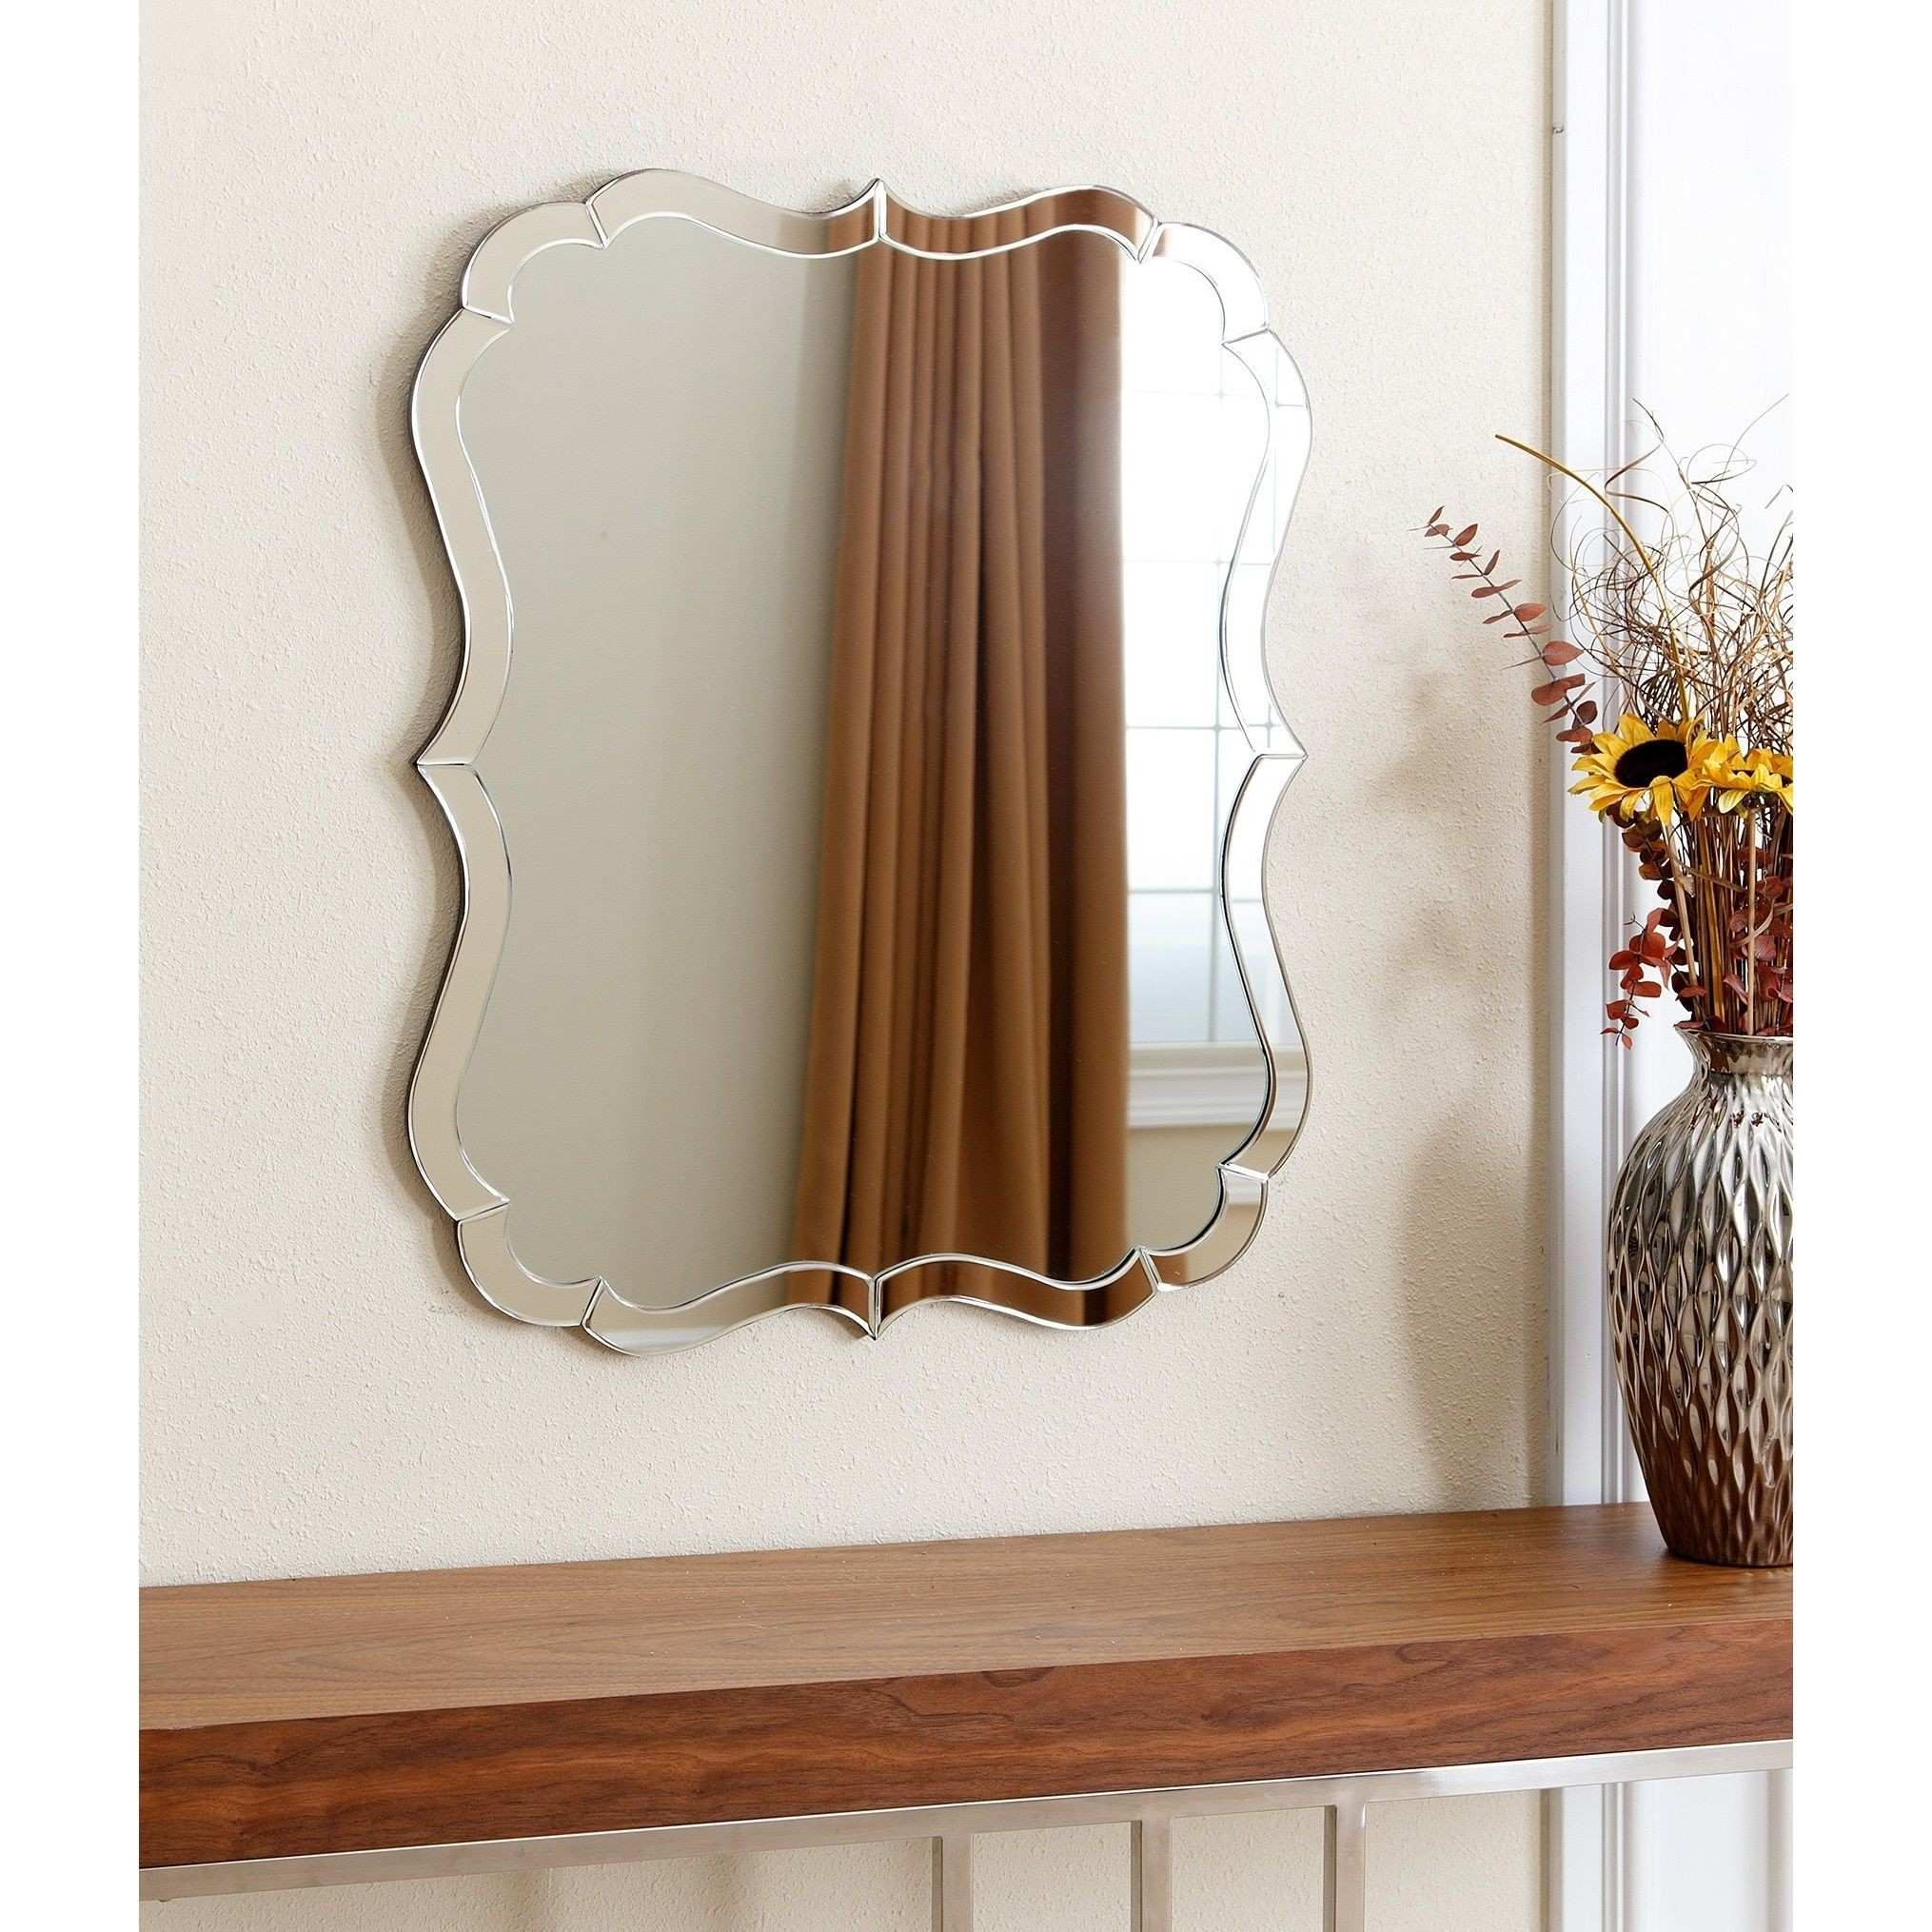 Abbyson Olivia Rectangle Wall Mirror by Abbyson